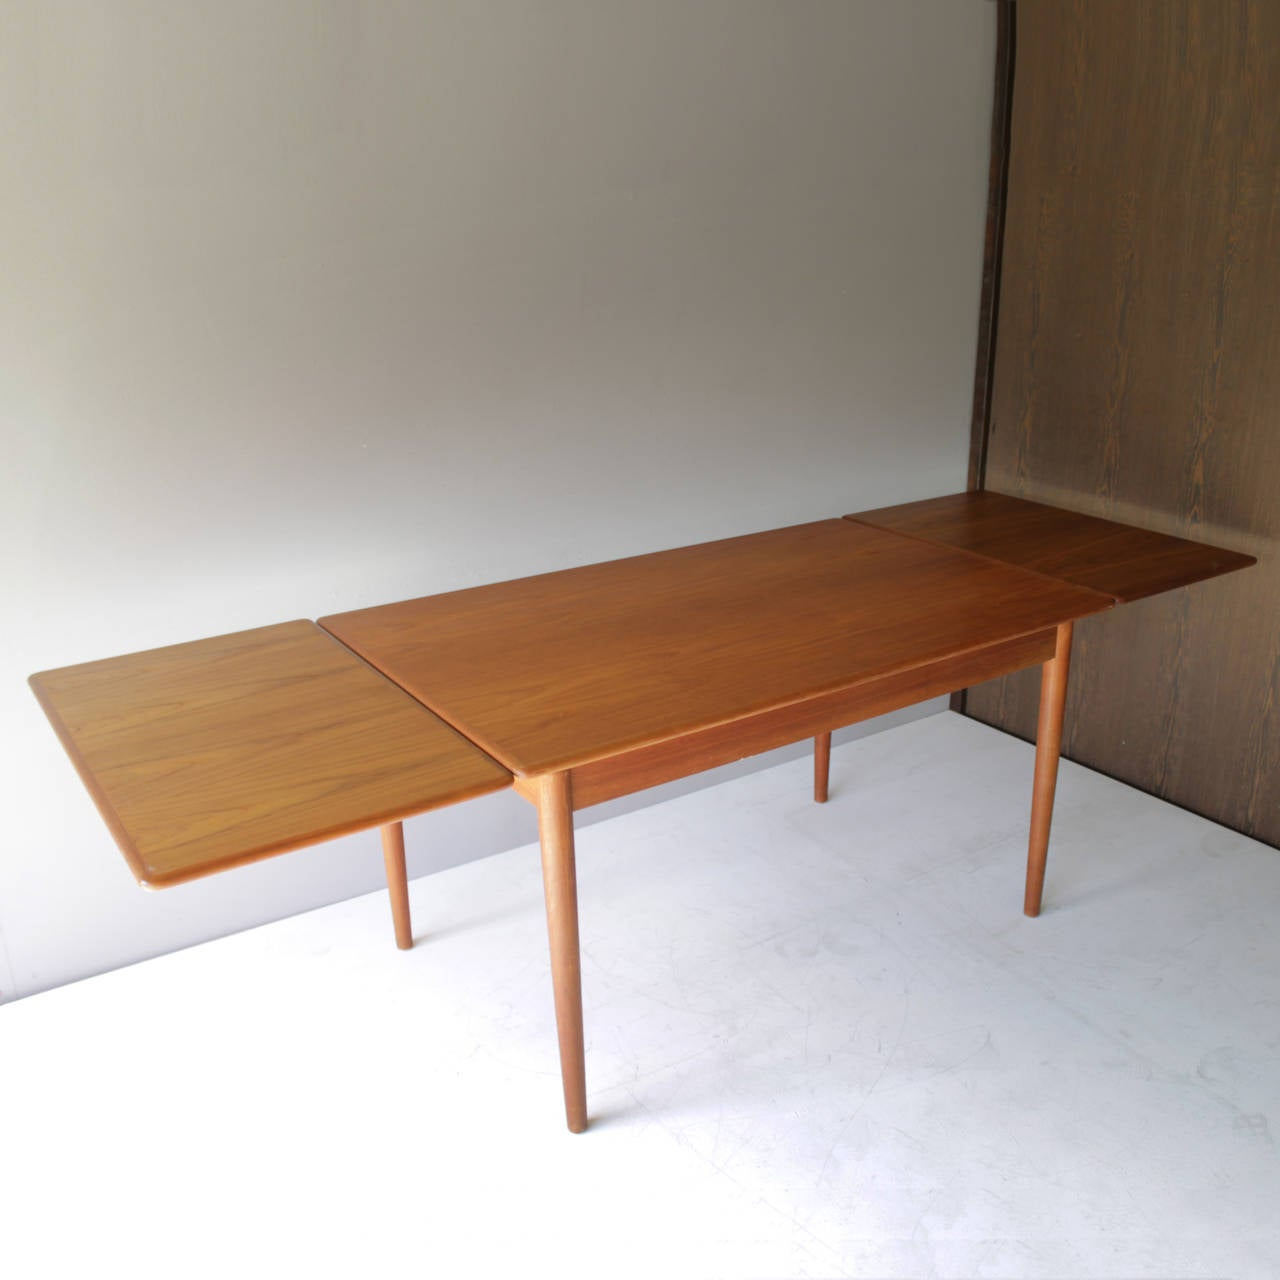 Danish teak dining room table with two leaves for sale at for Dining room table 2 leaves